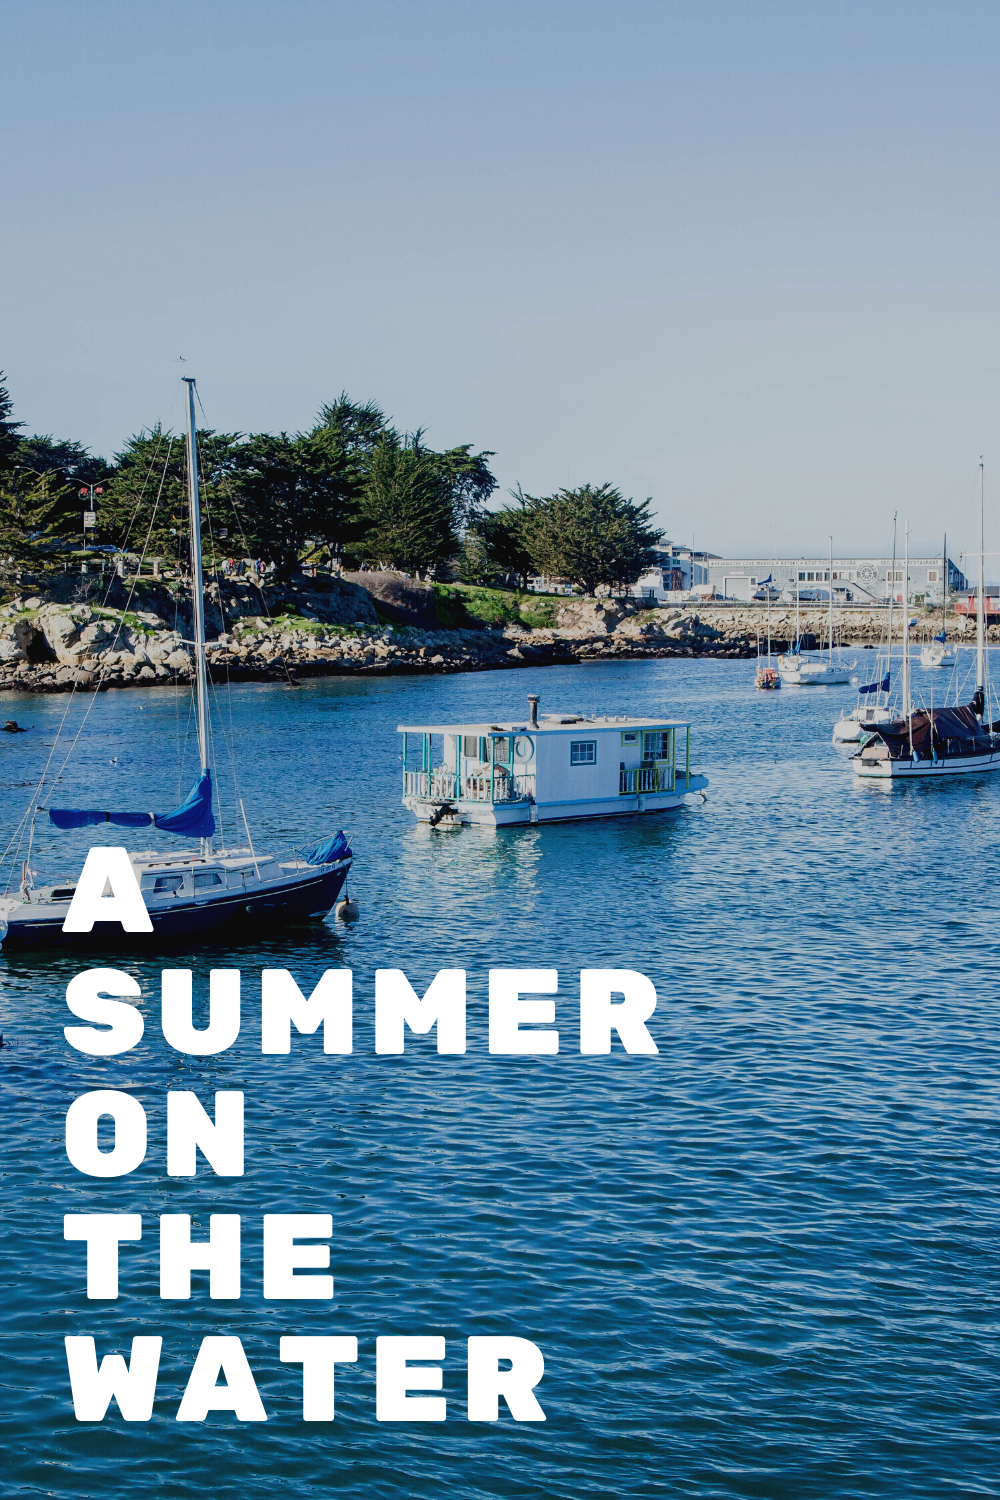 A Summer On the Water